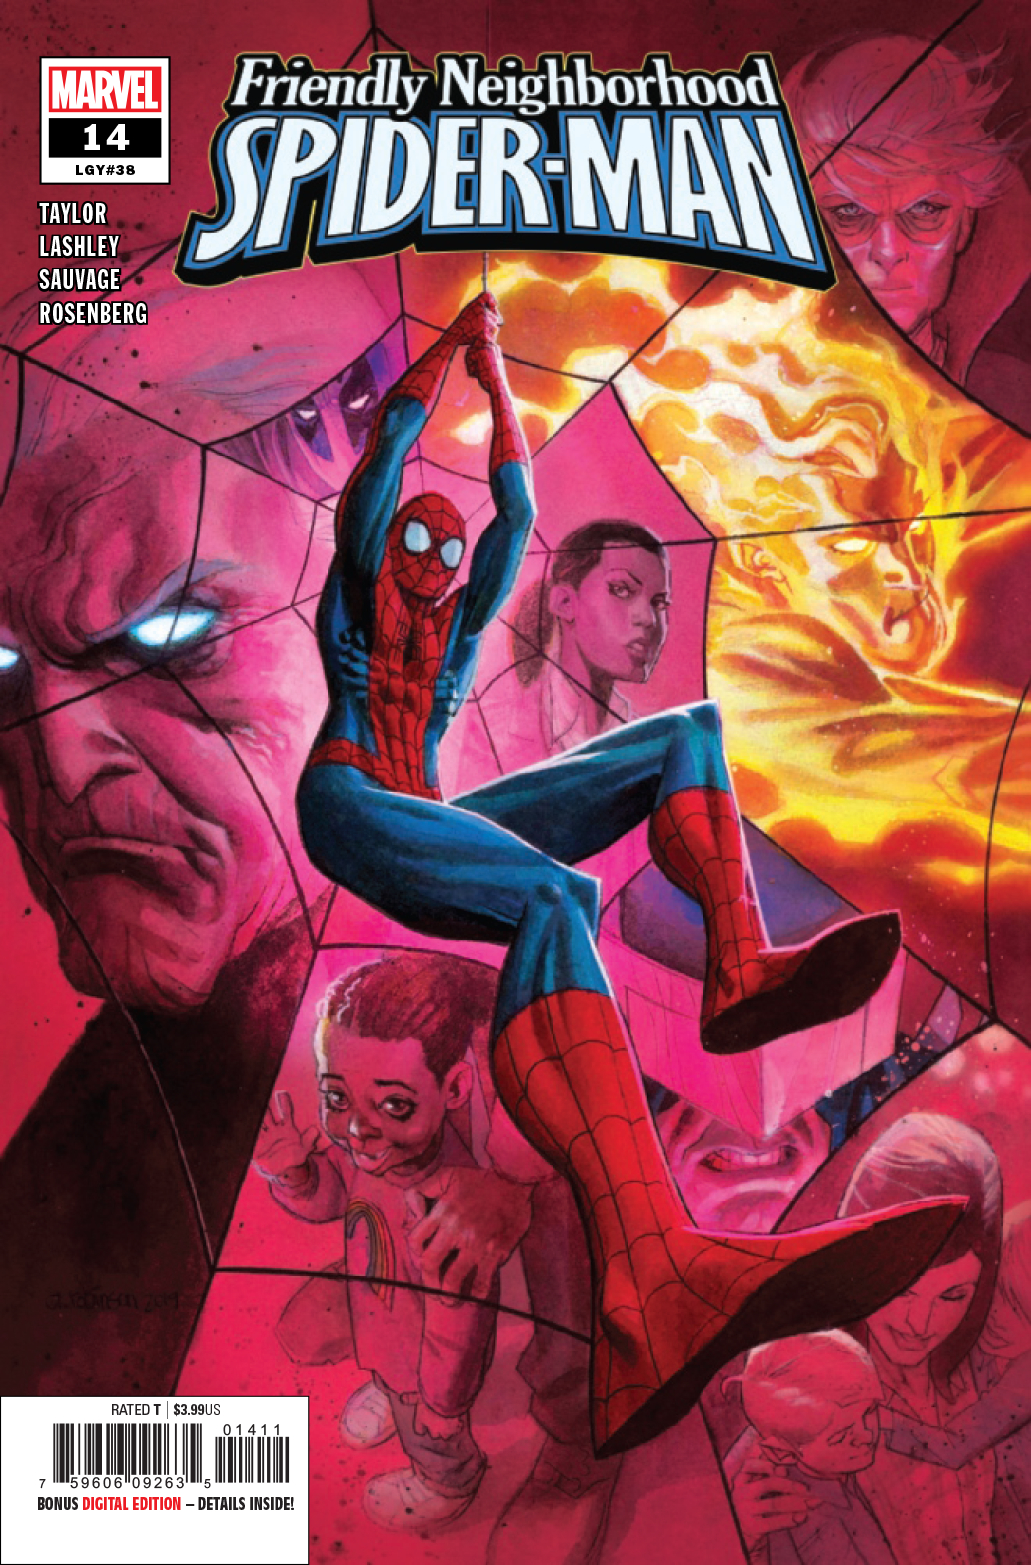 FRIENDLY NEIGHBORHOOD SPIDER-MAN #14